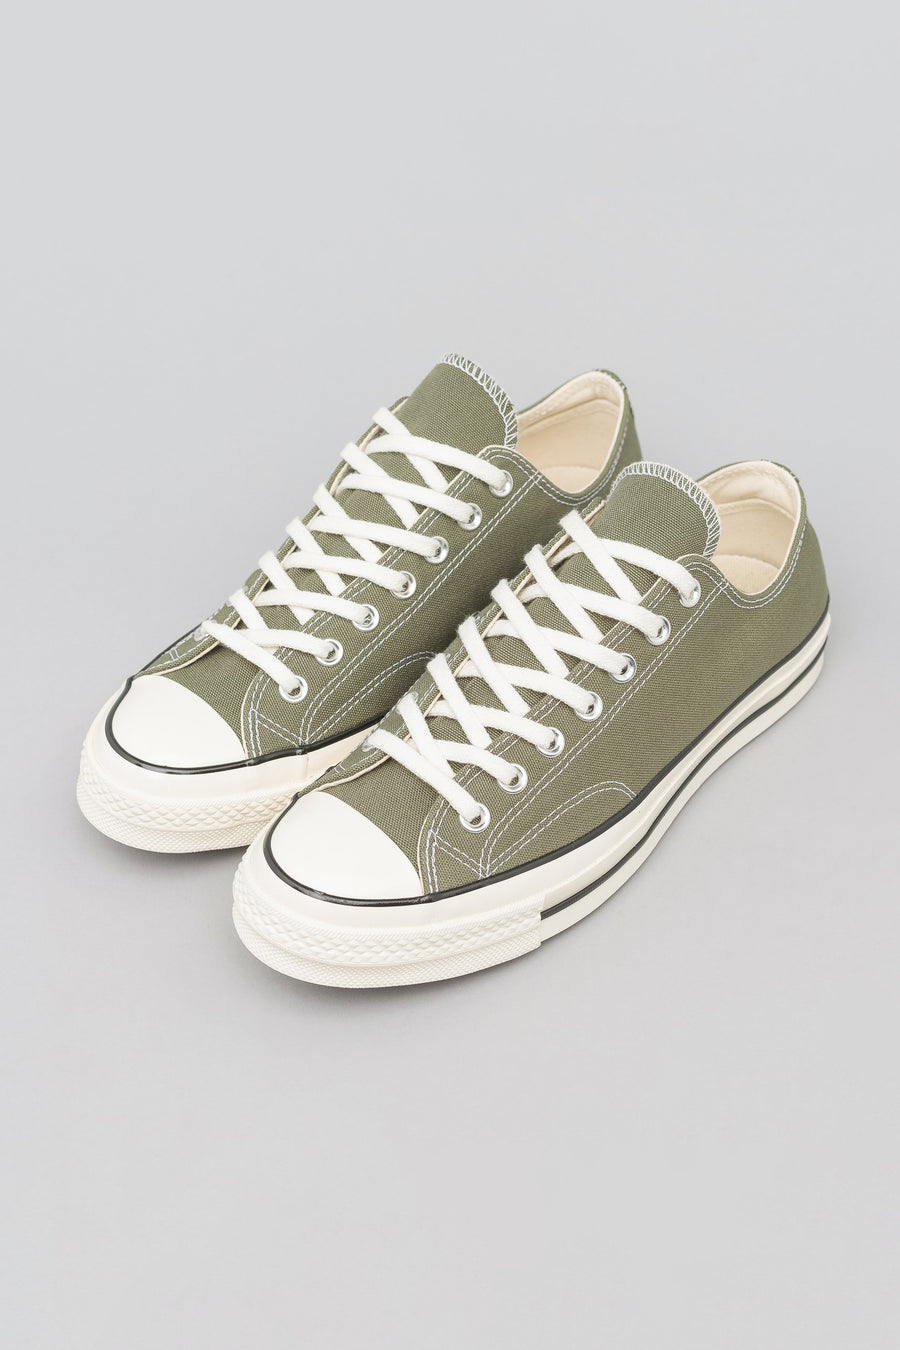 Converse Chuck 70 Ox in Field Surplus - Notre